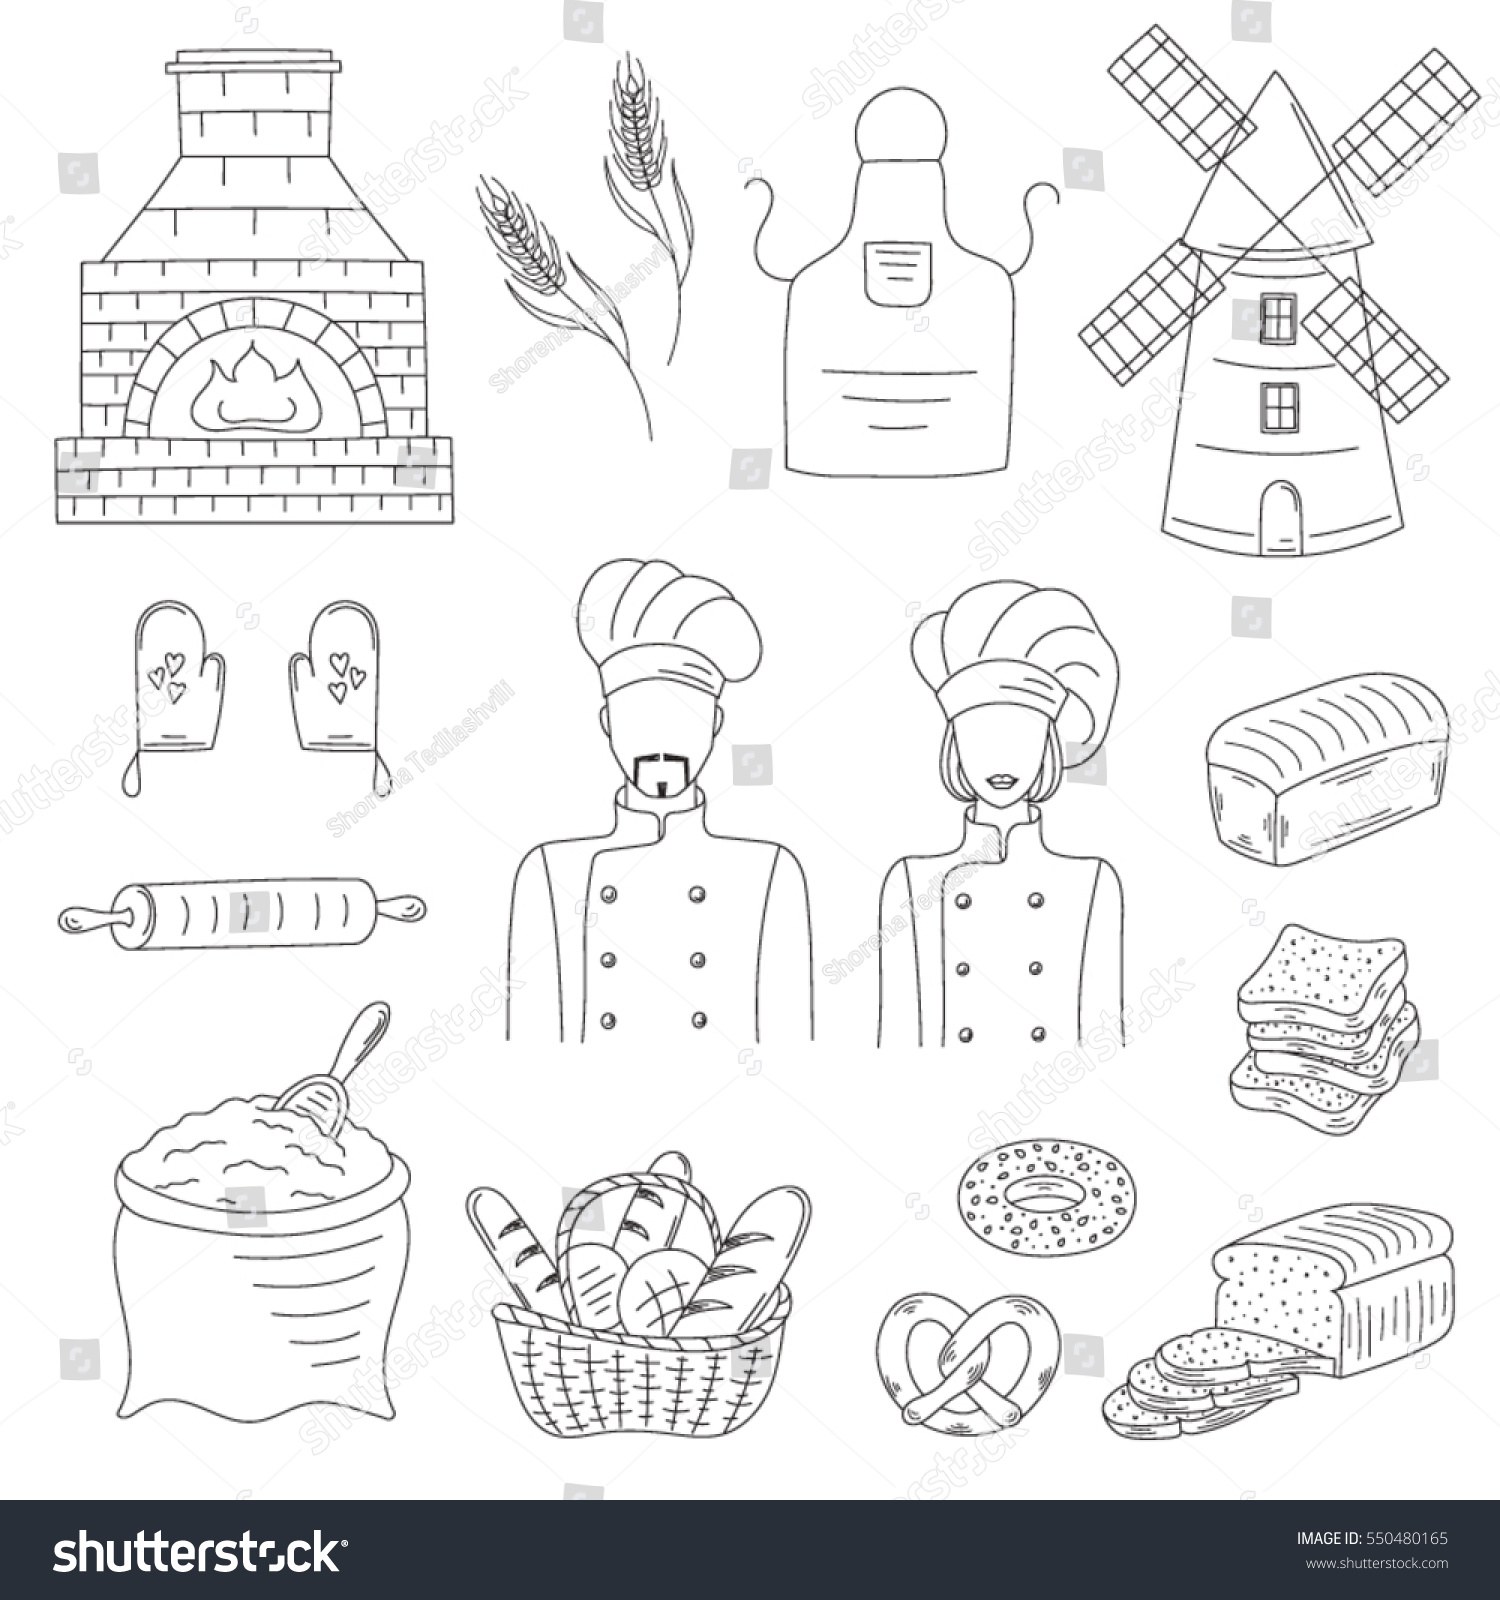 Bakery Collection Bakers Chief Uniforms Old Stock Photo (Photo ...